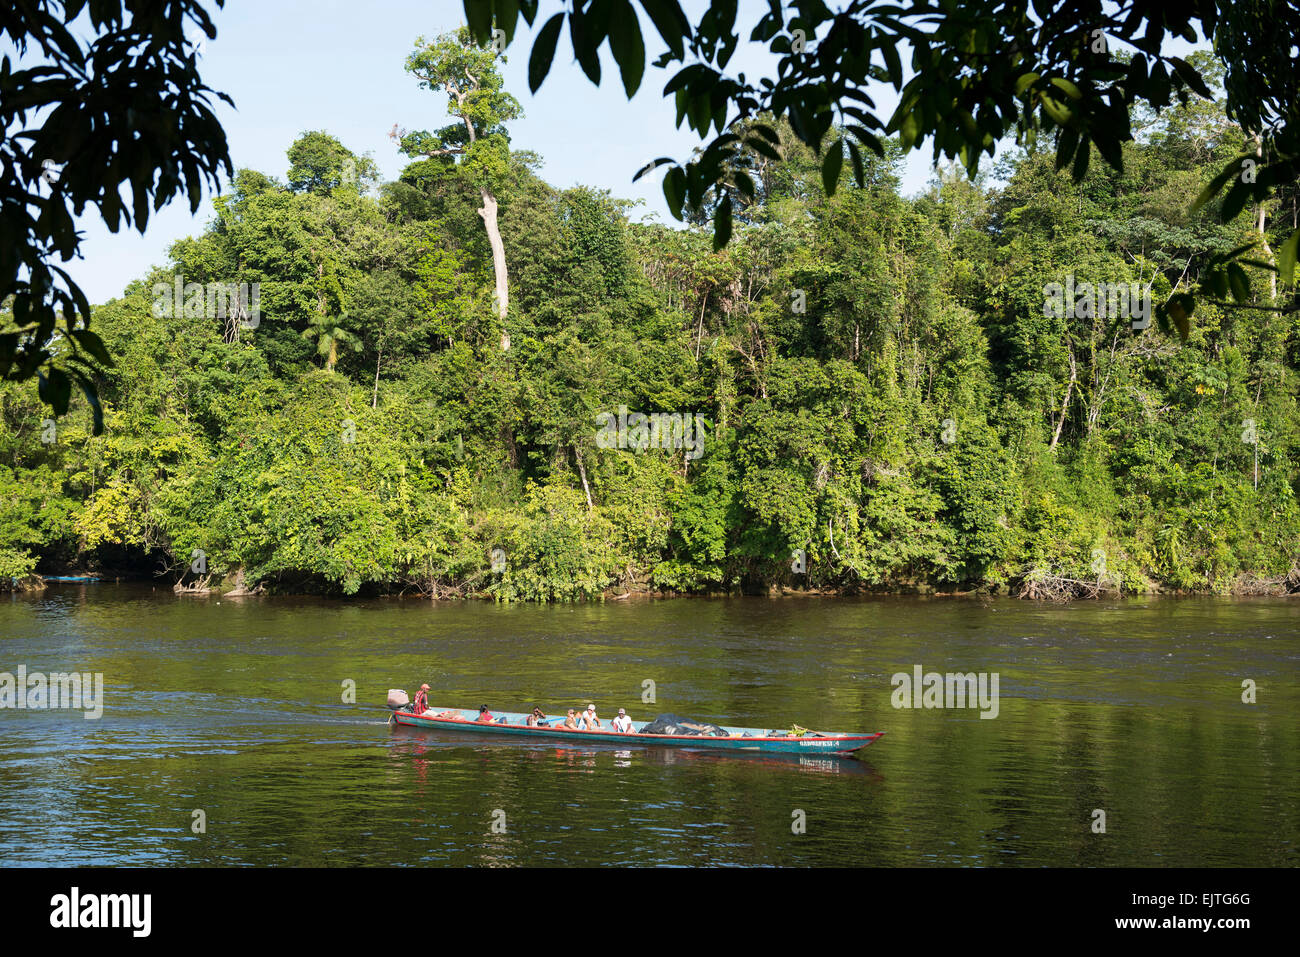 Boat on the Upper Suriname River, Suriname the Upper Suriname River, Suriname - Stock Image